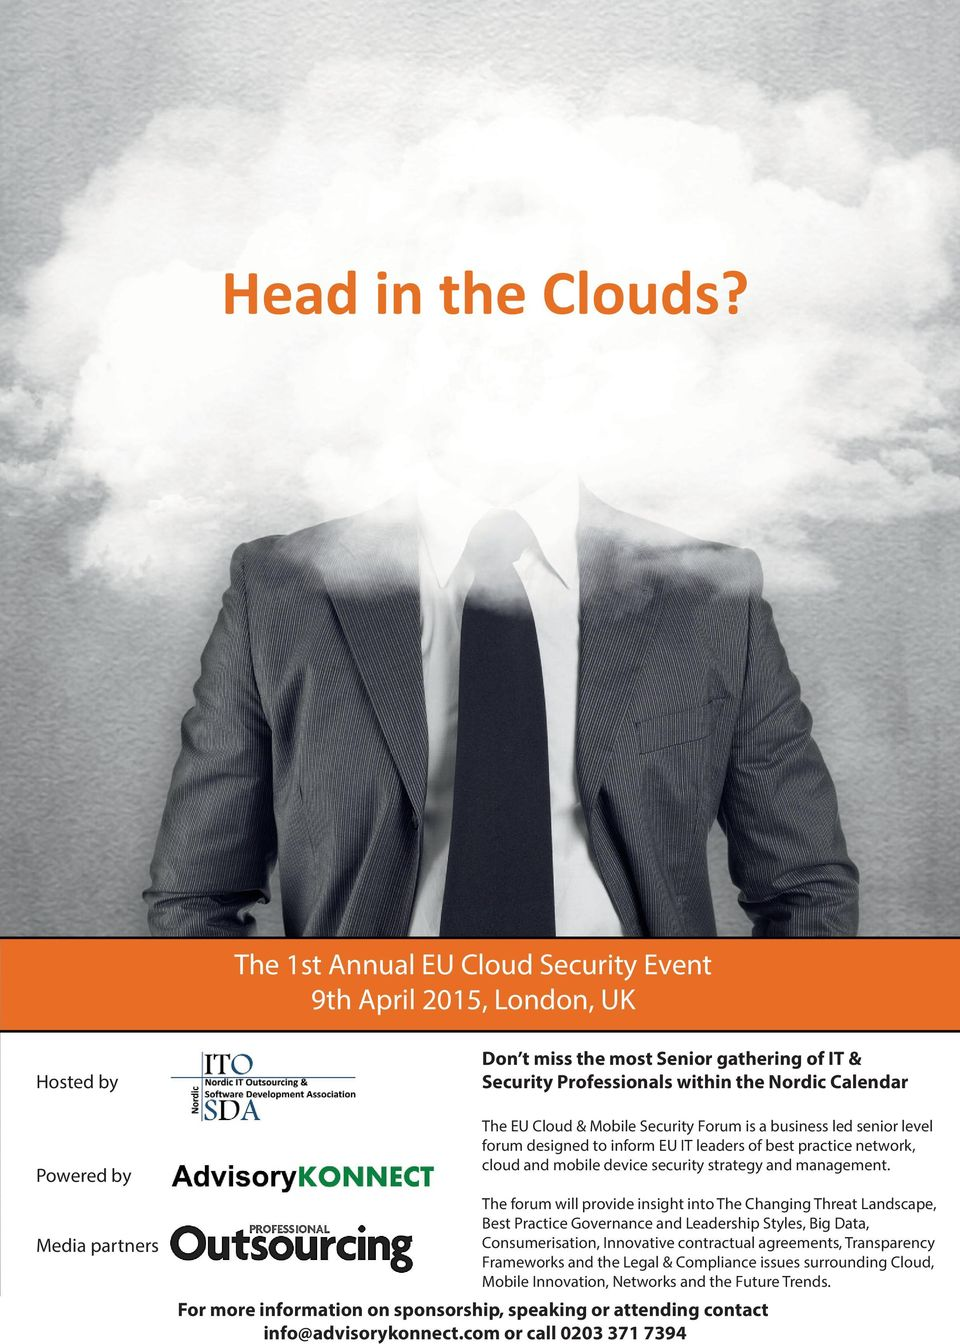 The EU Cloud & Mobile Security Forum is a business led senior level forum designed to inform EU IT leaders of best practice network, cloud and mobile device security strategy and management.